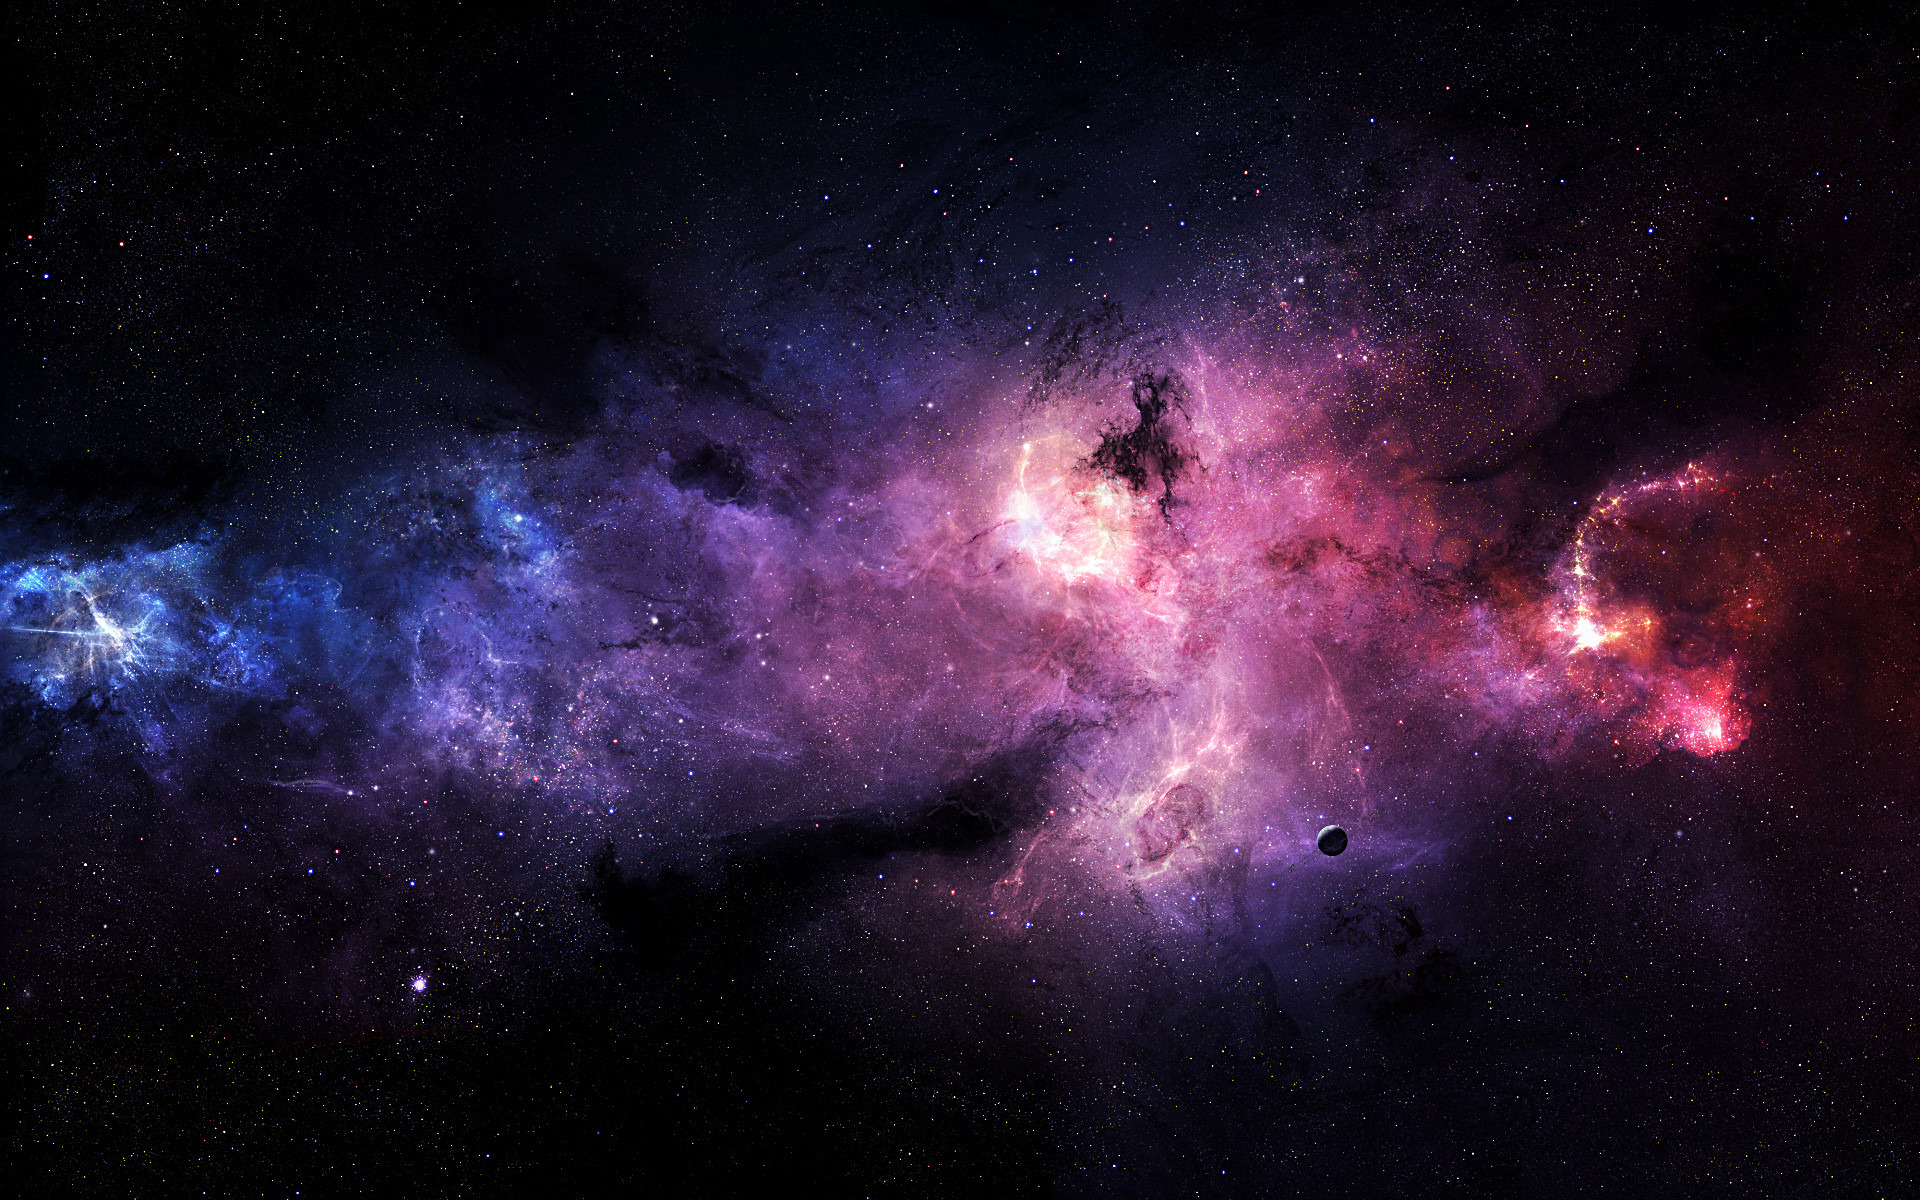 Purple Outer Space Wallpaper 1920×1200 #20809 HD Wallpaper Res .